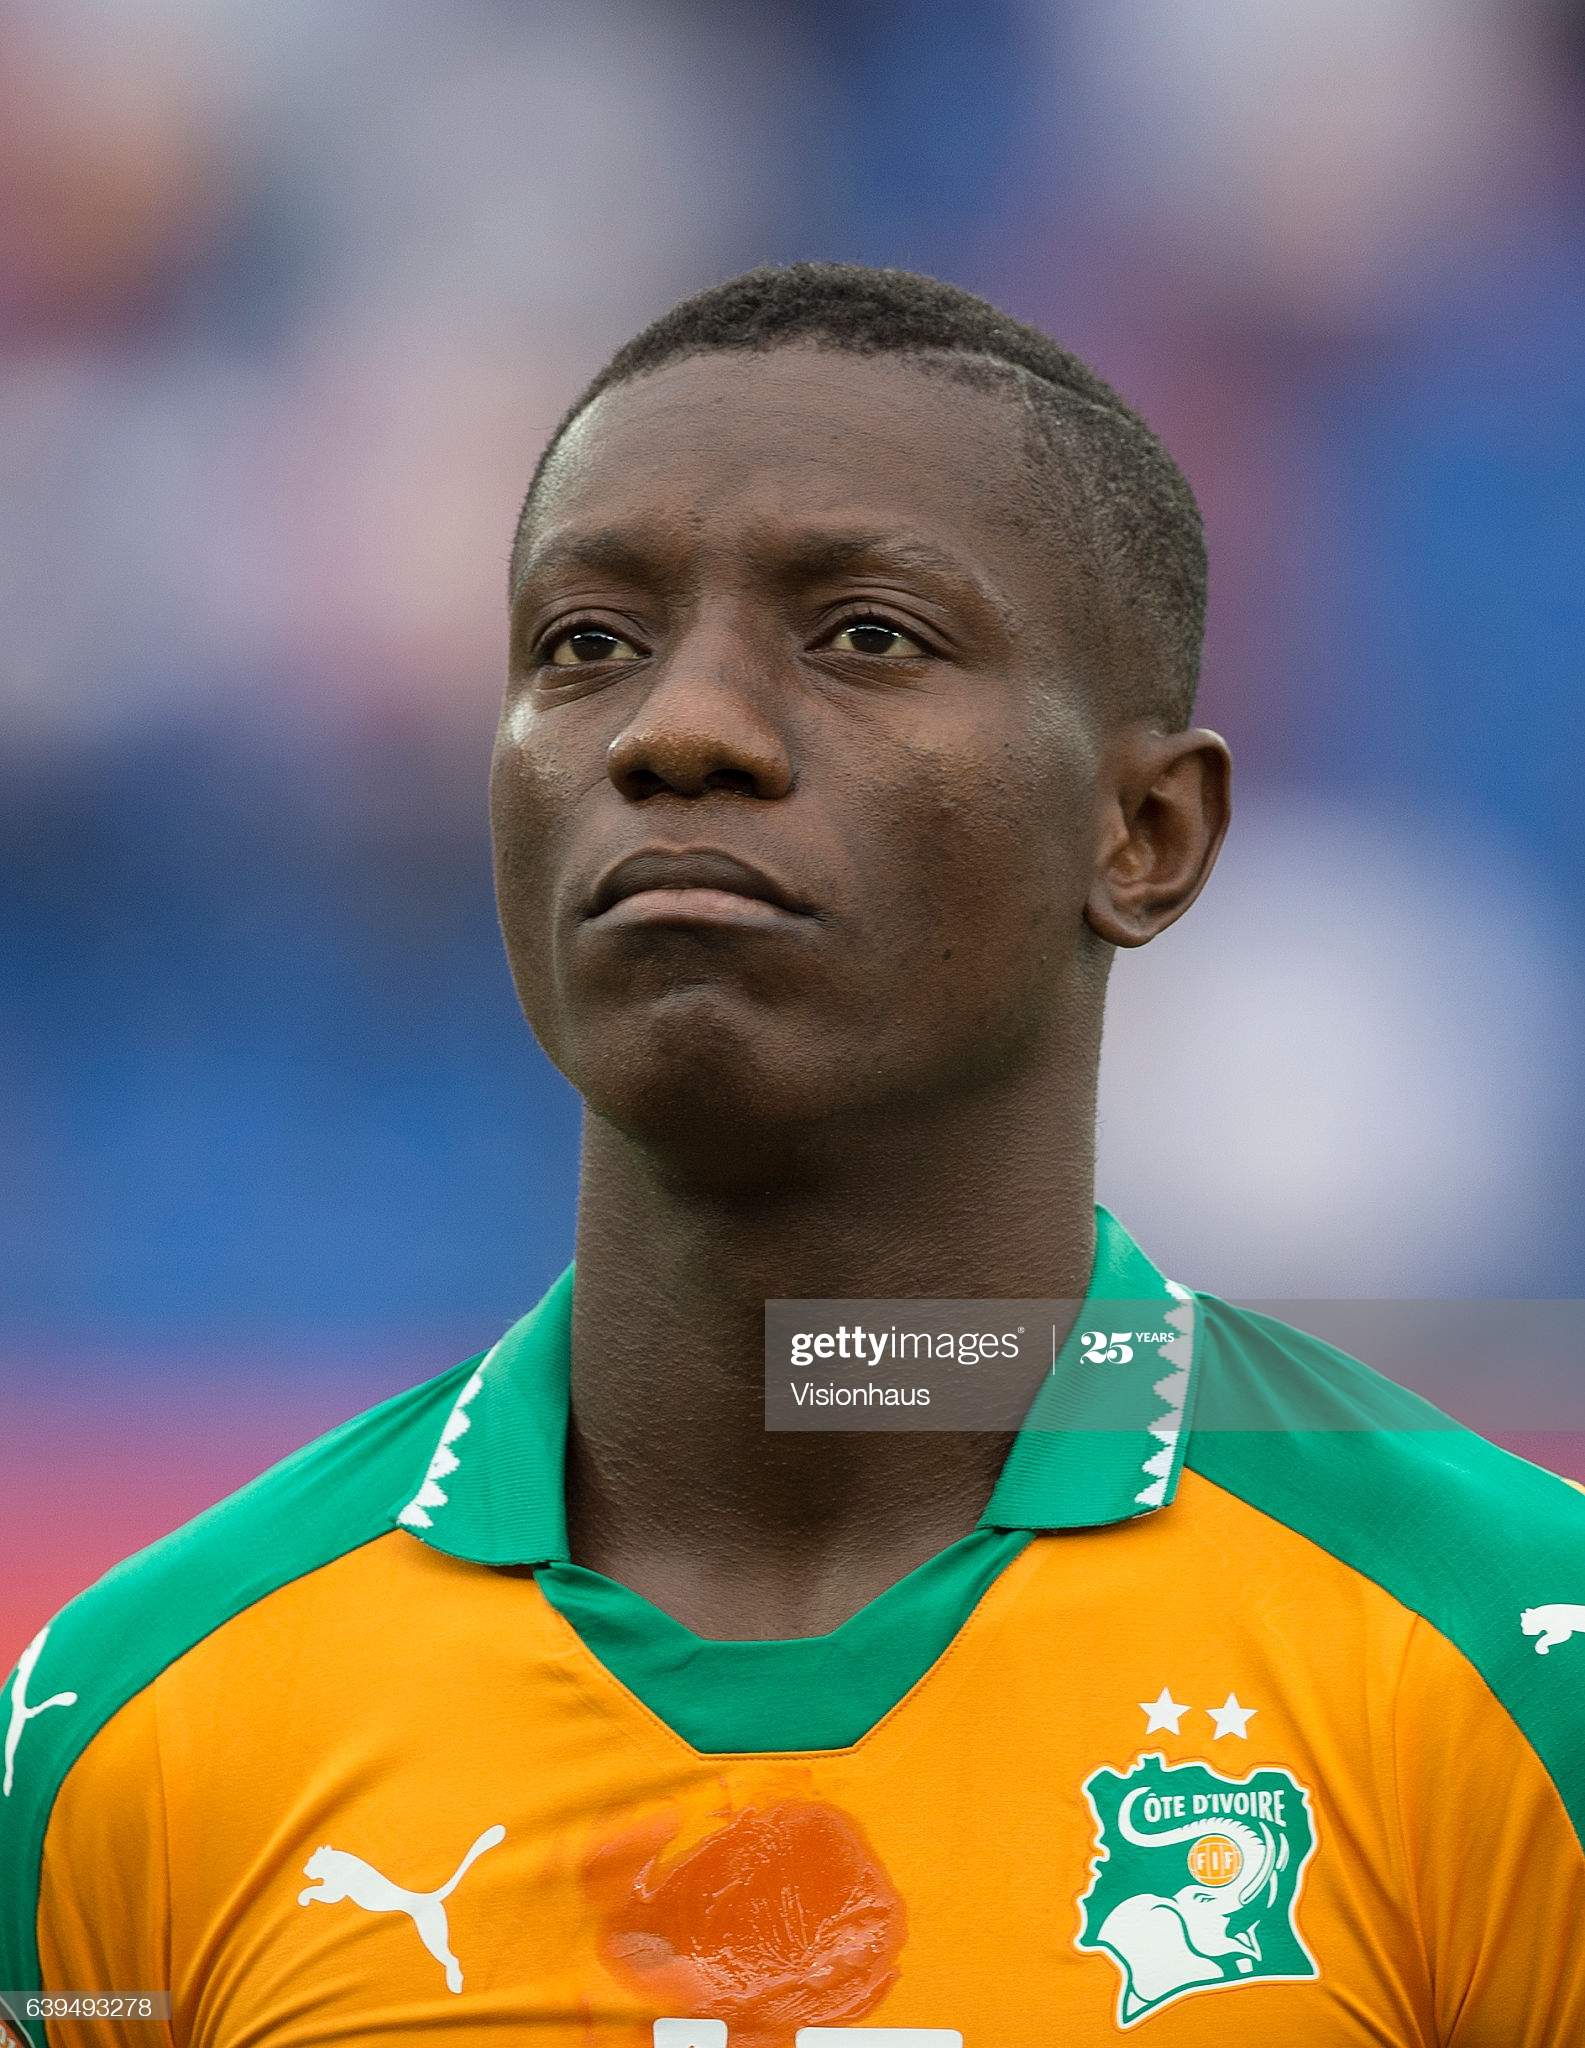 OYEM, GABON - JANUARY 20: MAX ALAIN GRADEL of Ivory Coast during the Group C match between Ivory Coast and DR Congo at Stade Oyem on January 20, 2017 in Oyem, Gabon. (Photo by Visionhaus/Corbis via Getty Images)